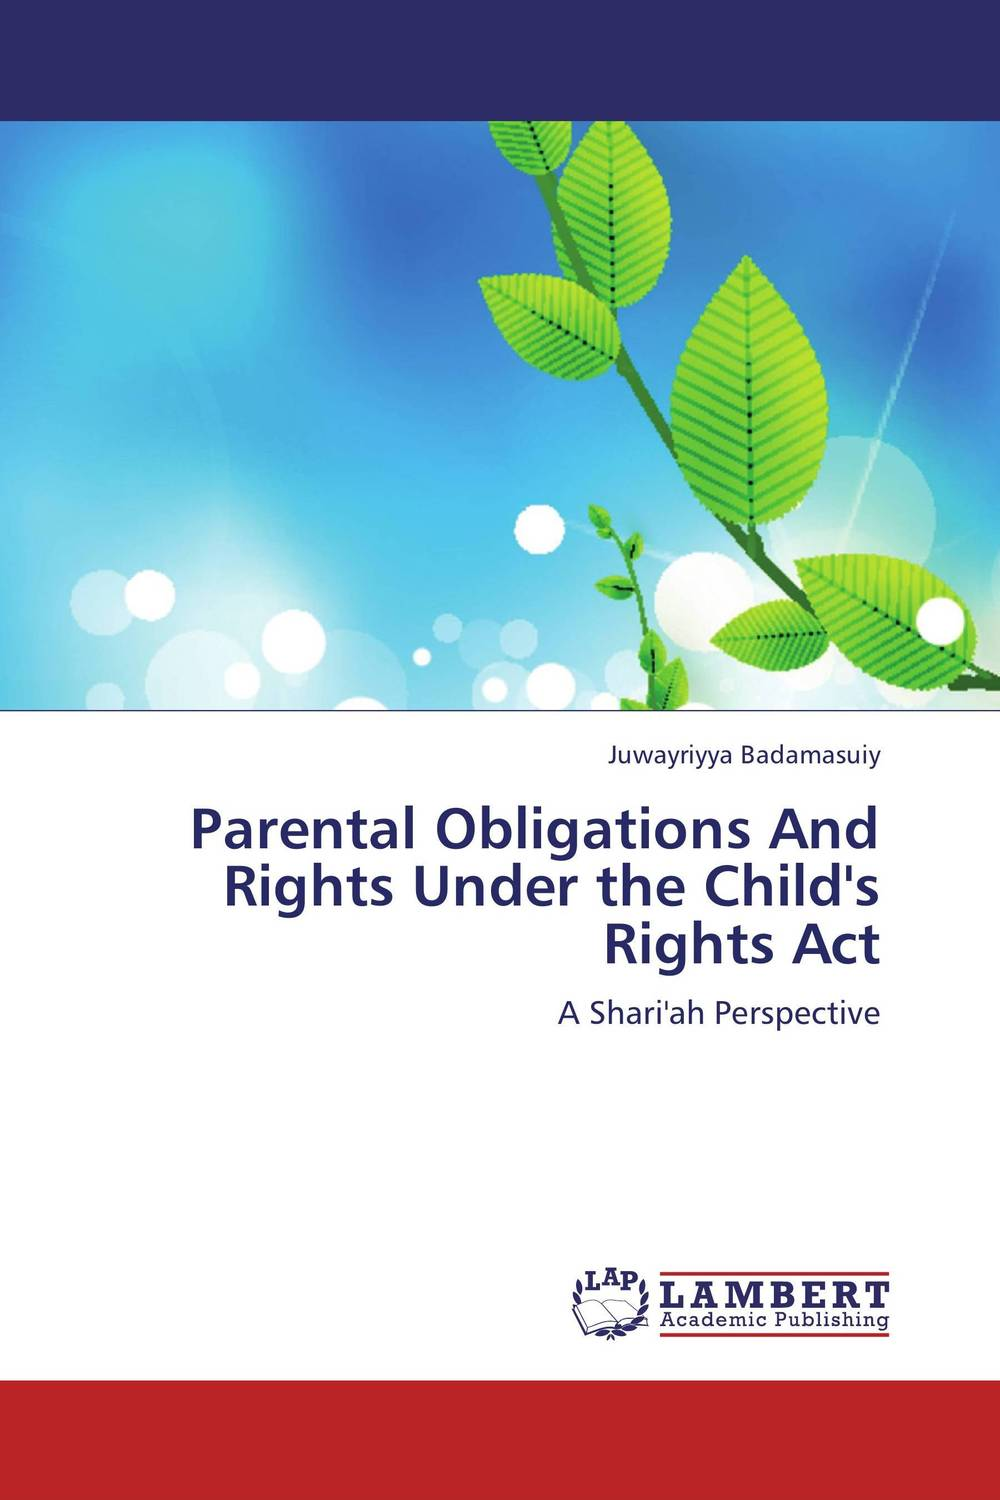 купить Parental Obligations And Rights Under the Child's Rights Act недорого